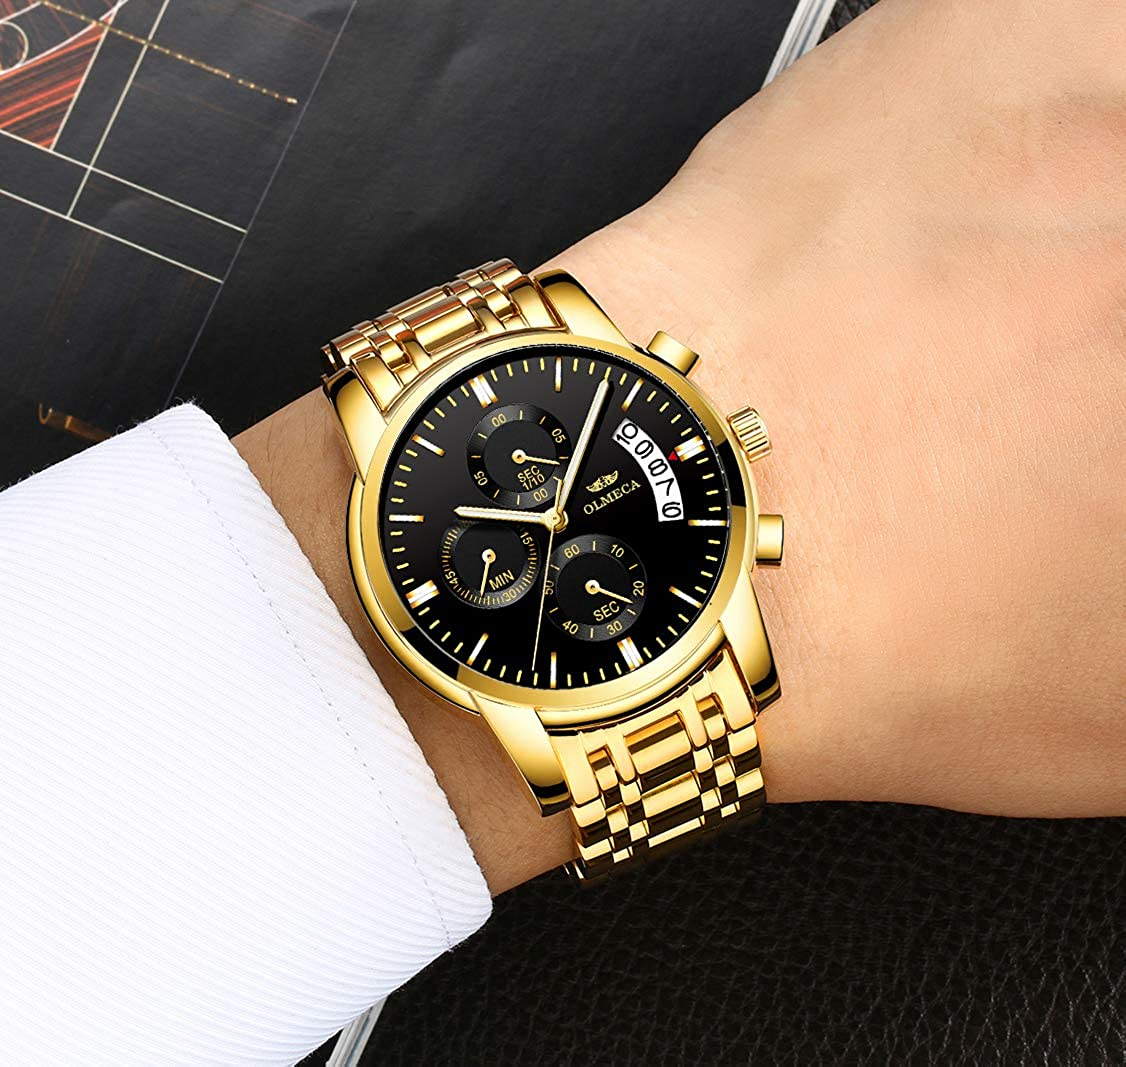 Amazon.com: OLMECA Mens Watches Luxury Wristwatches Rhinestone Watches Waterproof Fashion Quartz Watches Stainless Steel Black Watch 0826-QJHMgd: Watches